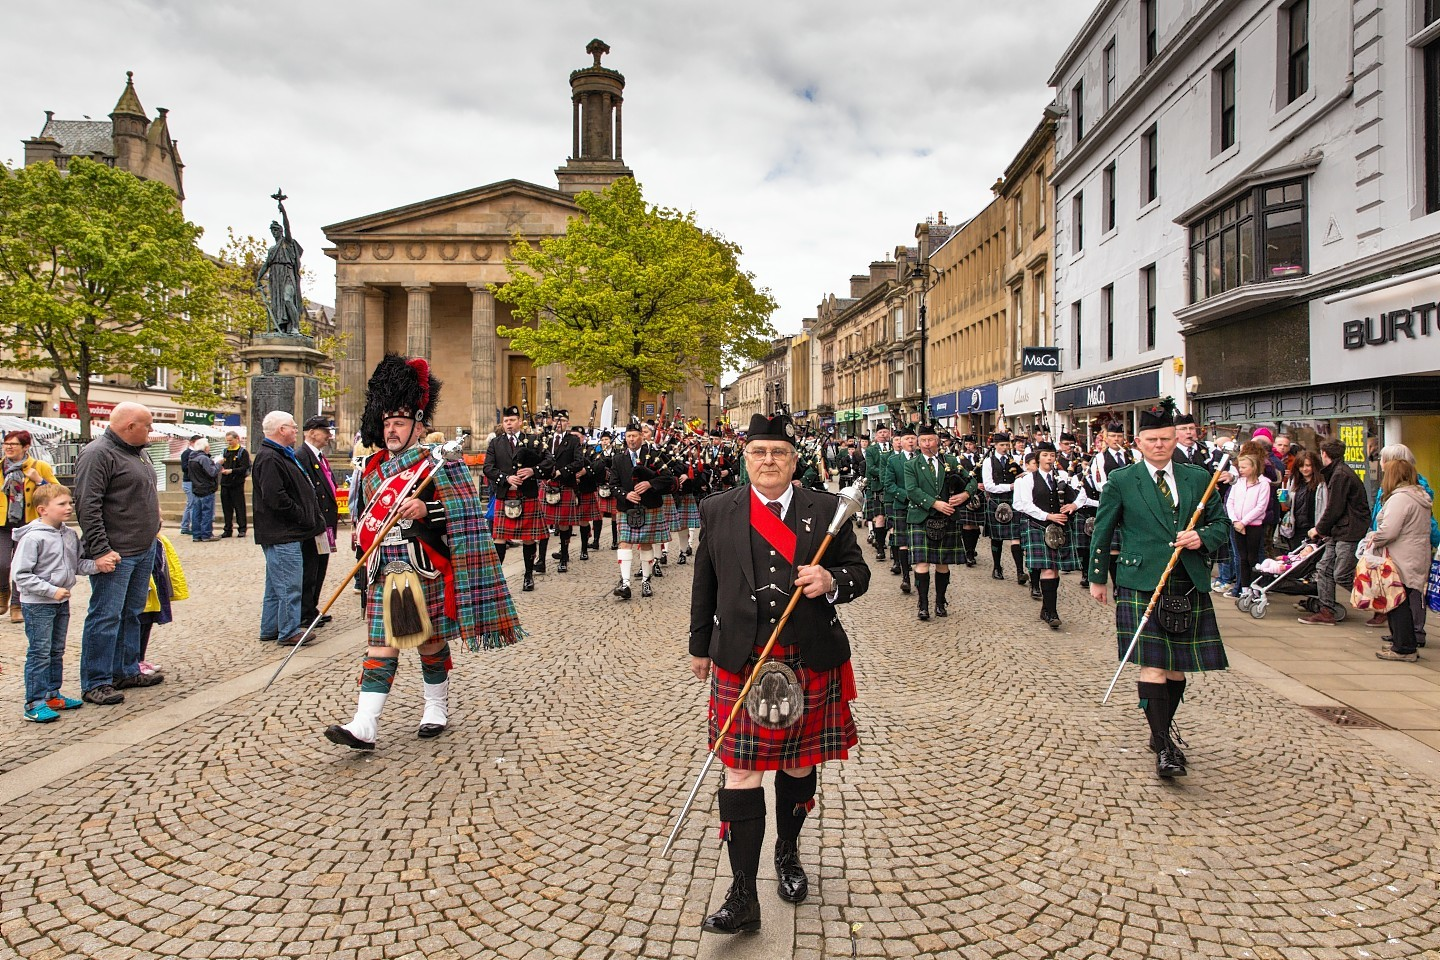 The massed bands of Elgin and District, Ullapool and District, Strathisla and Huntly and District marching along the High Street in Elgin